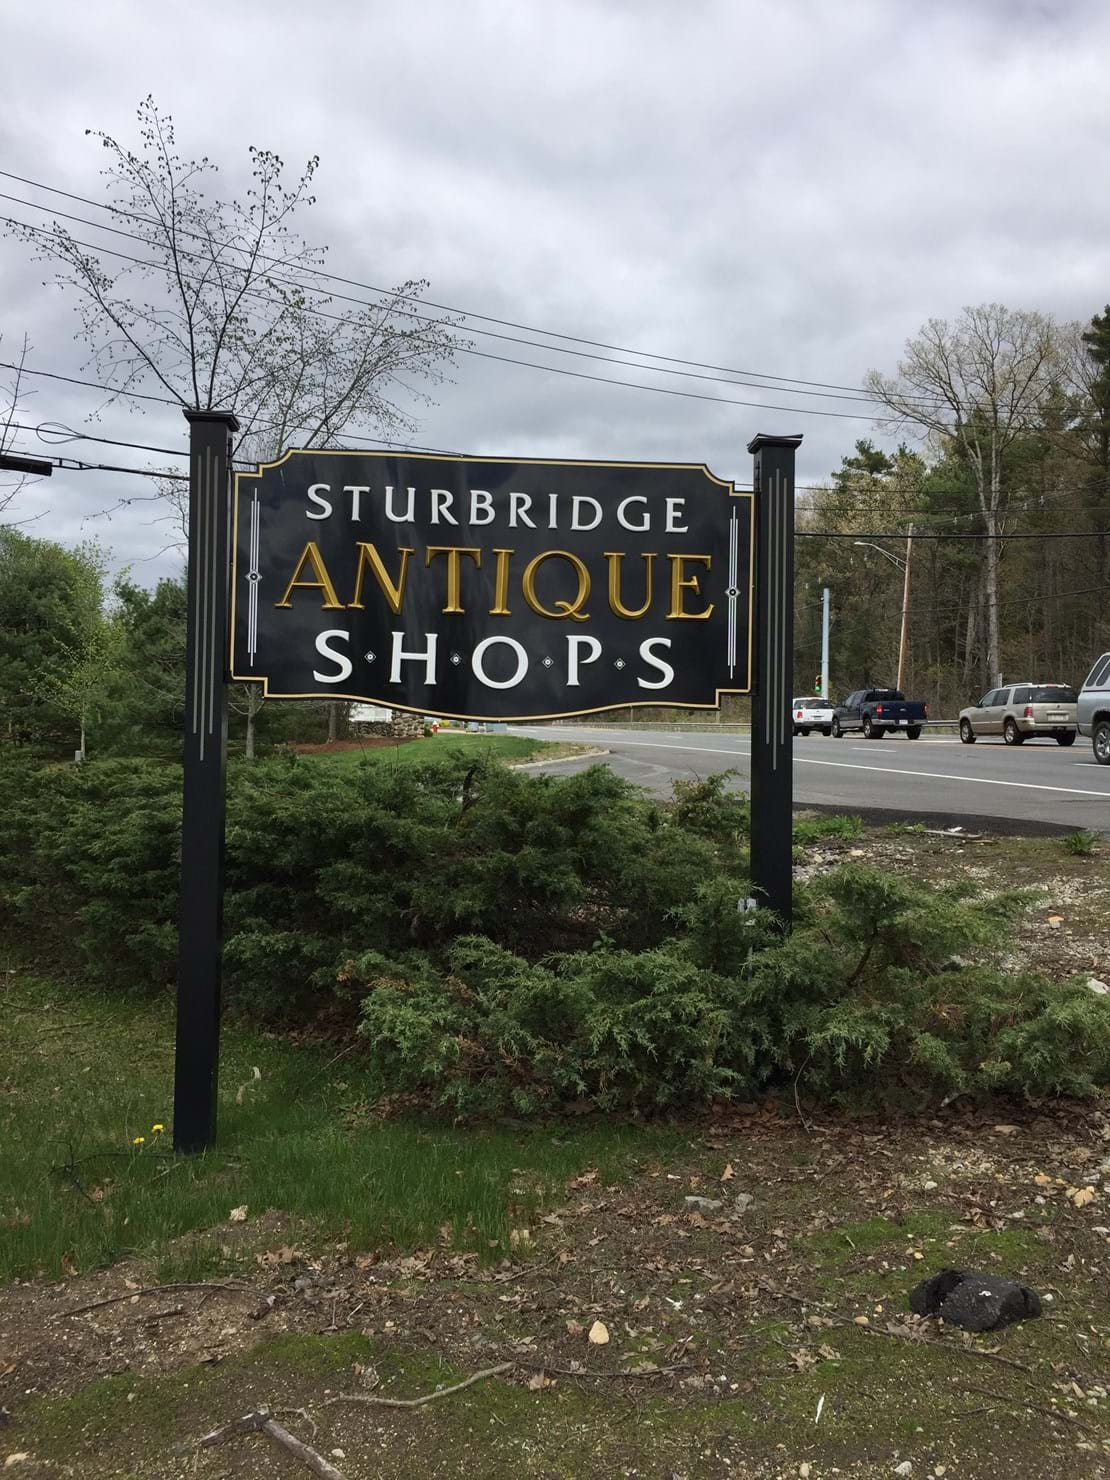 A local, beautiful antique store.